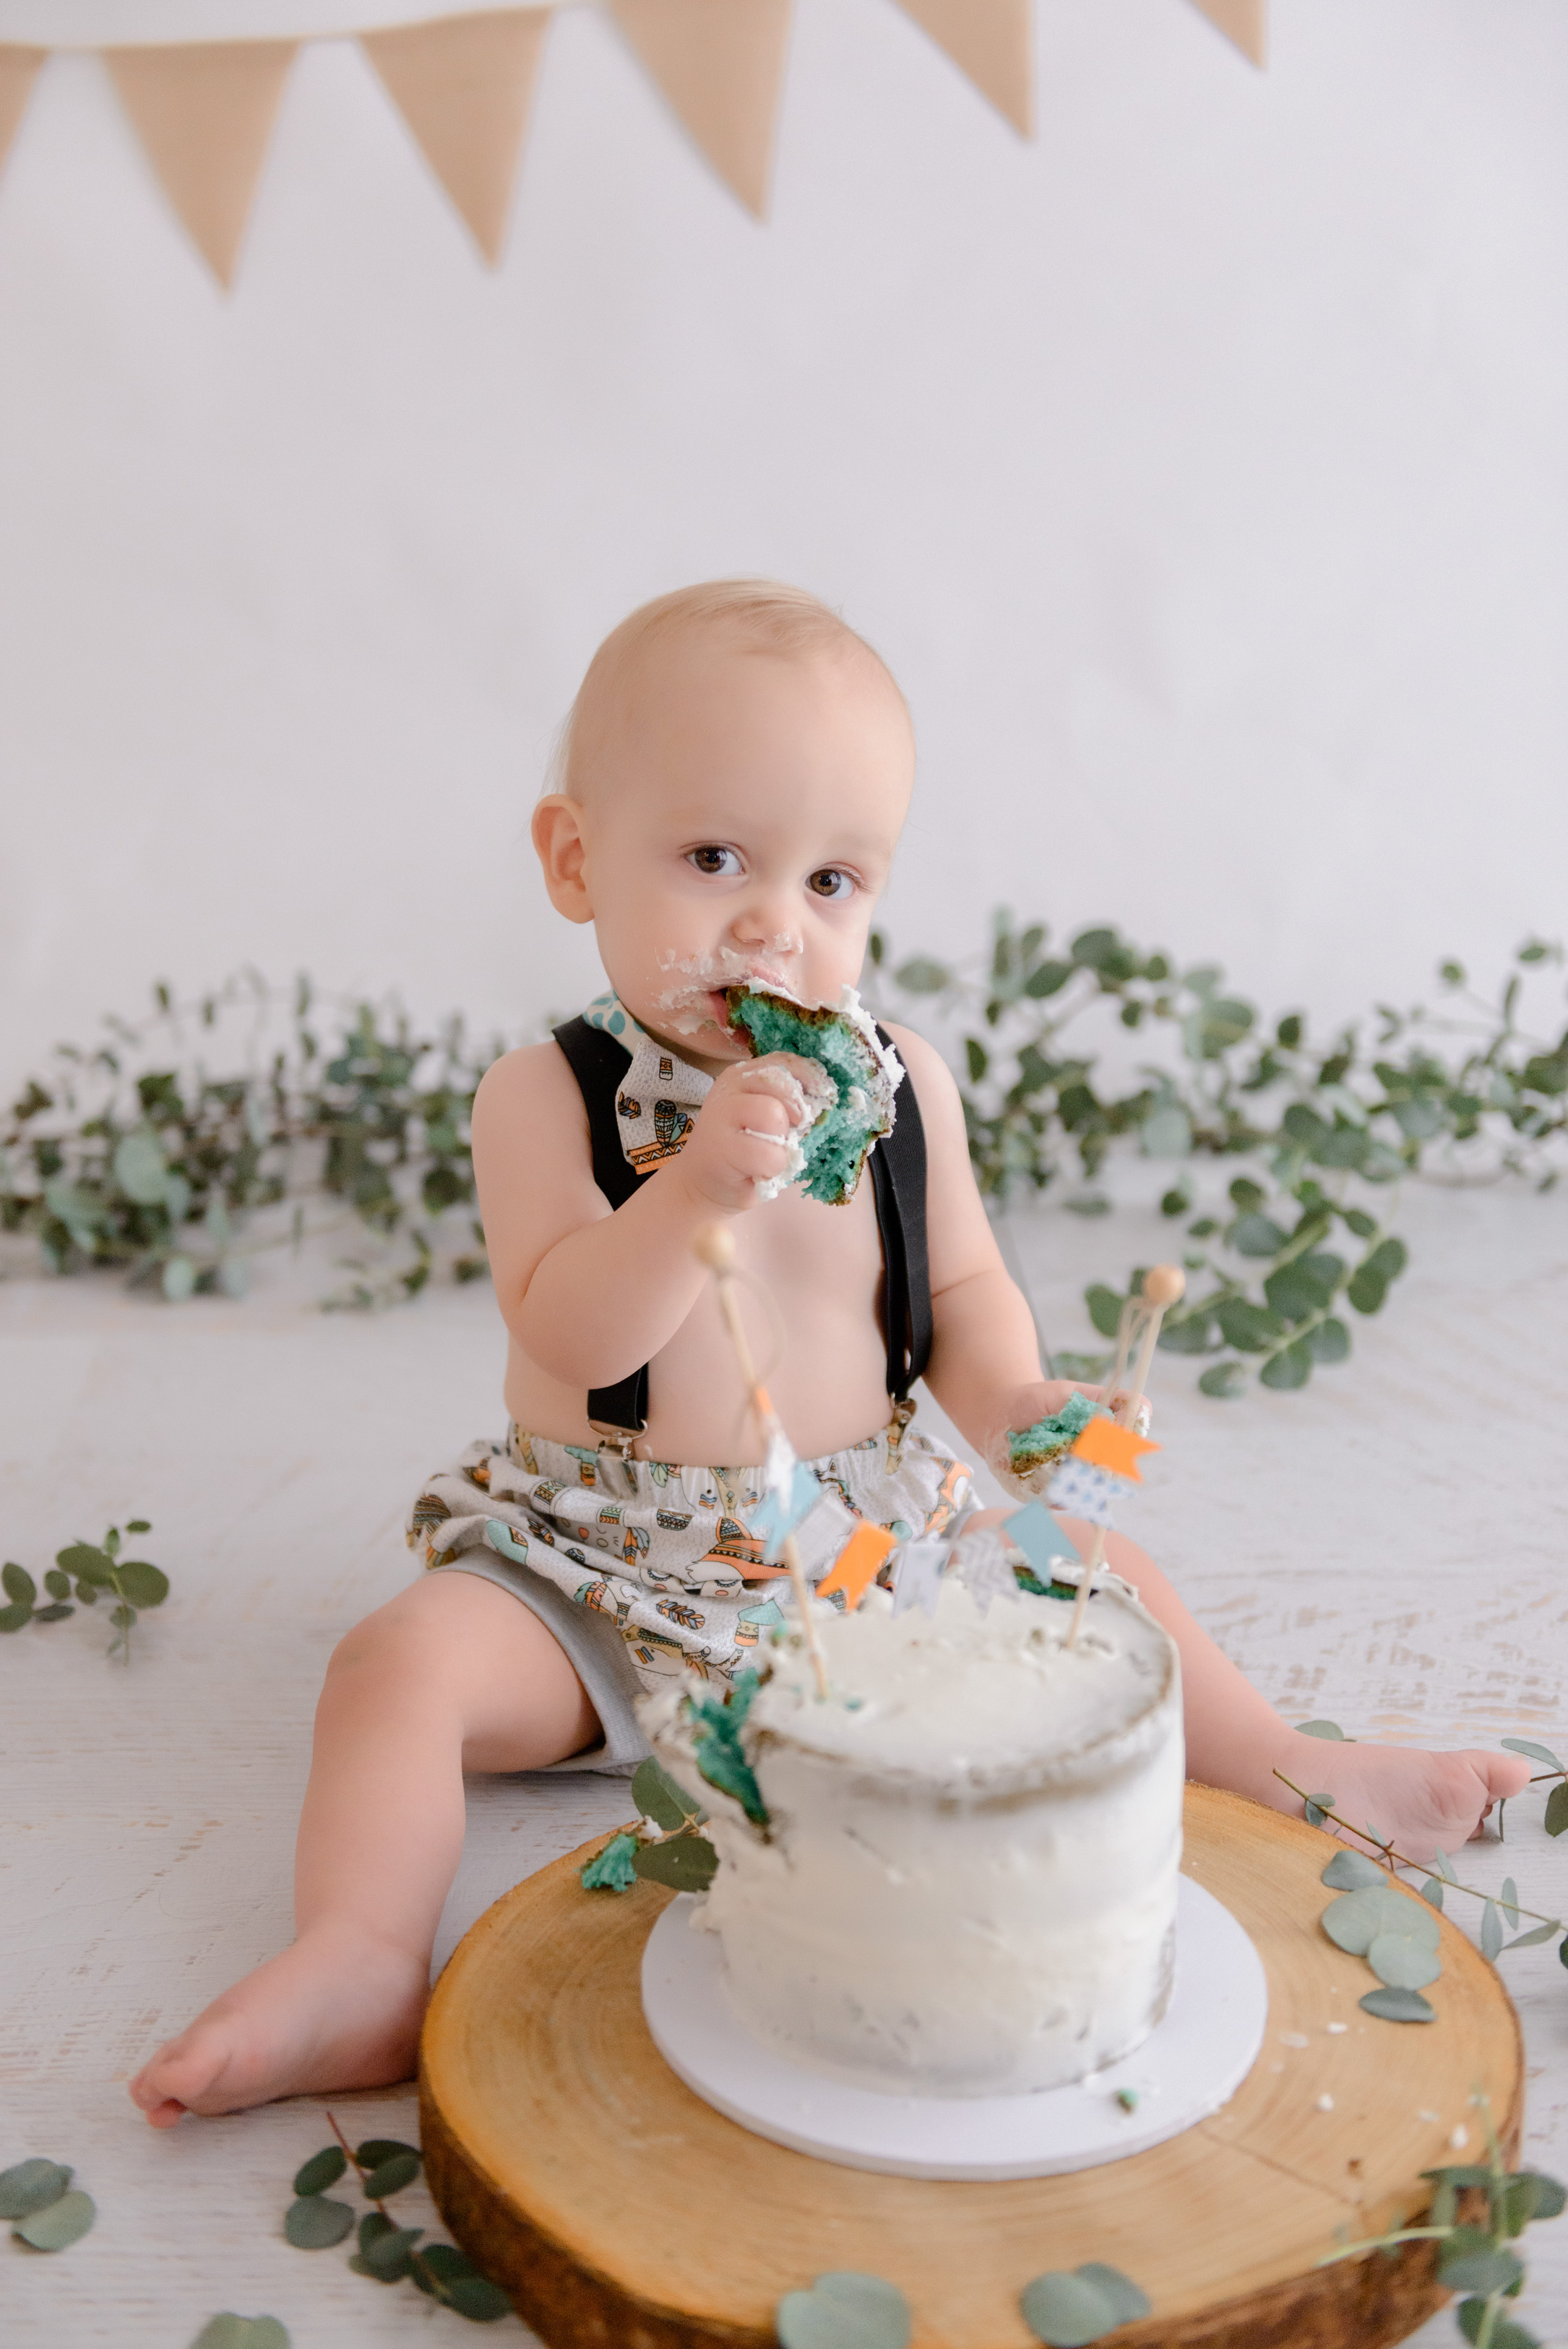 Elegant botanical cake smash and splash portraits for your babies 1st birthday with Bree Hulme Photography on Sydney's Northern Beaches and North Shore